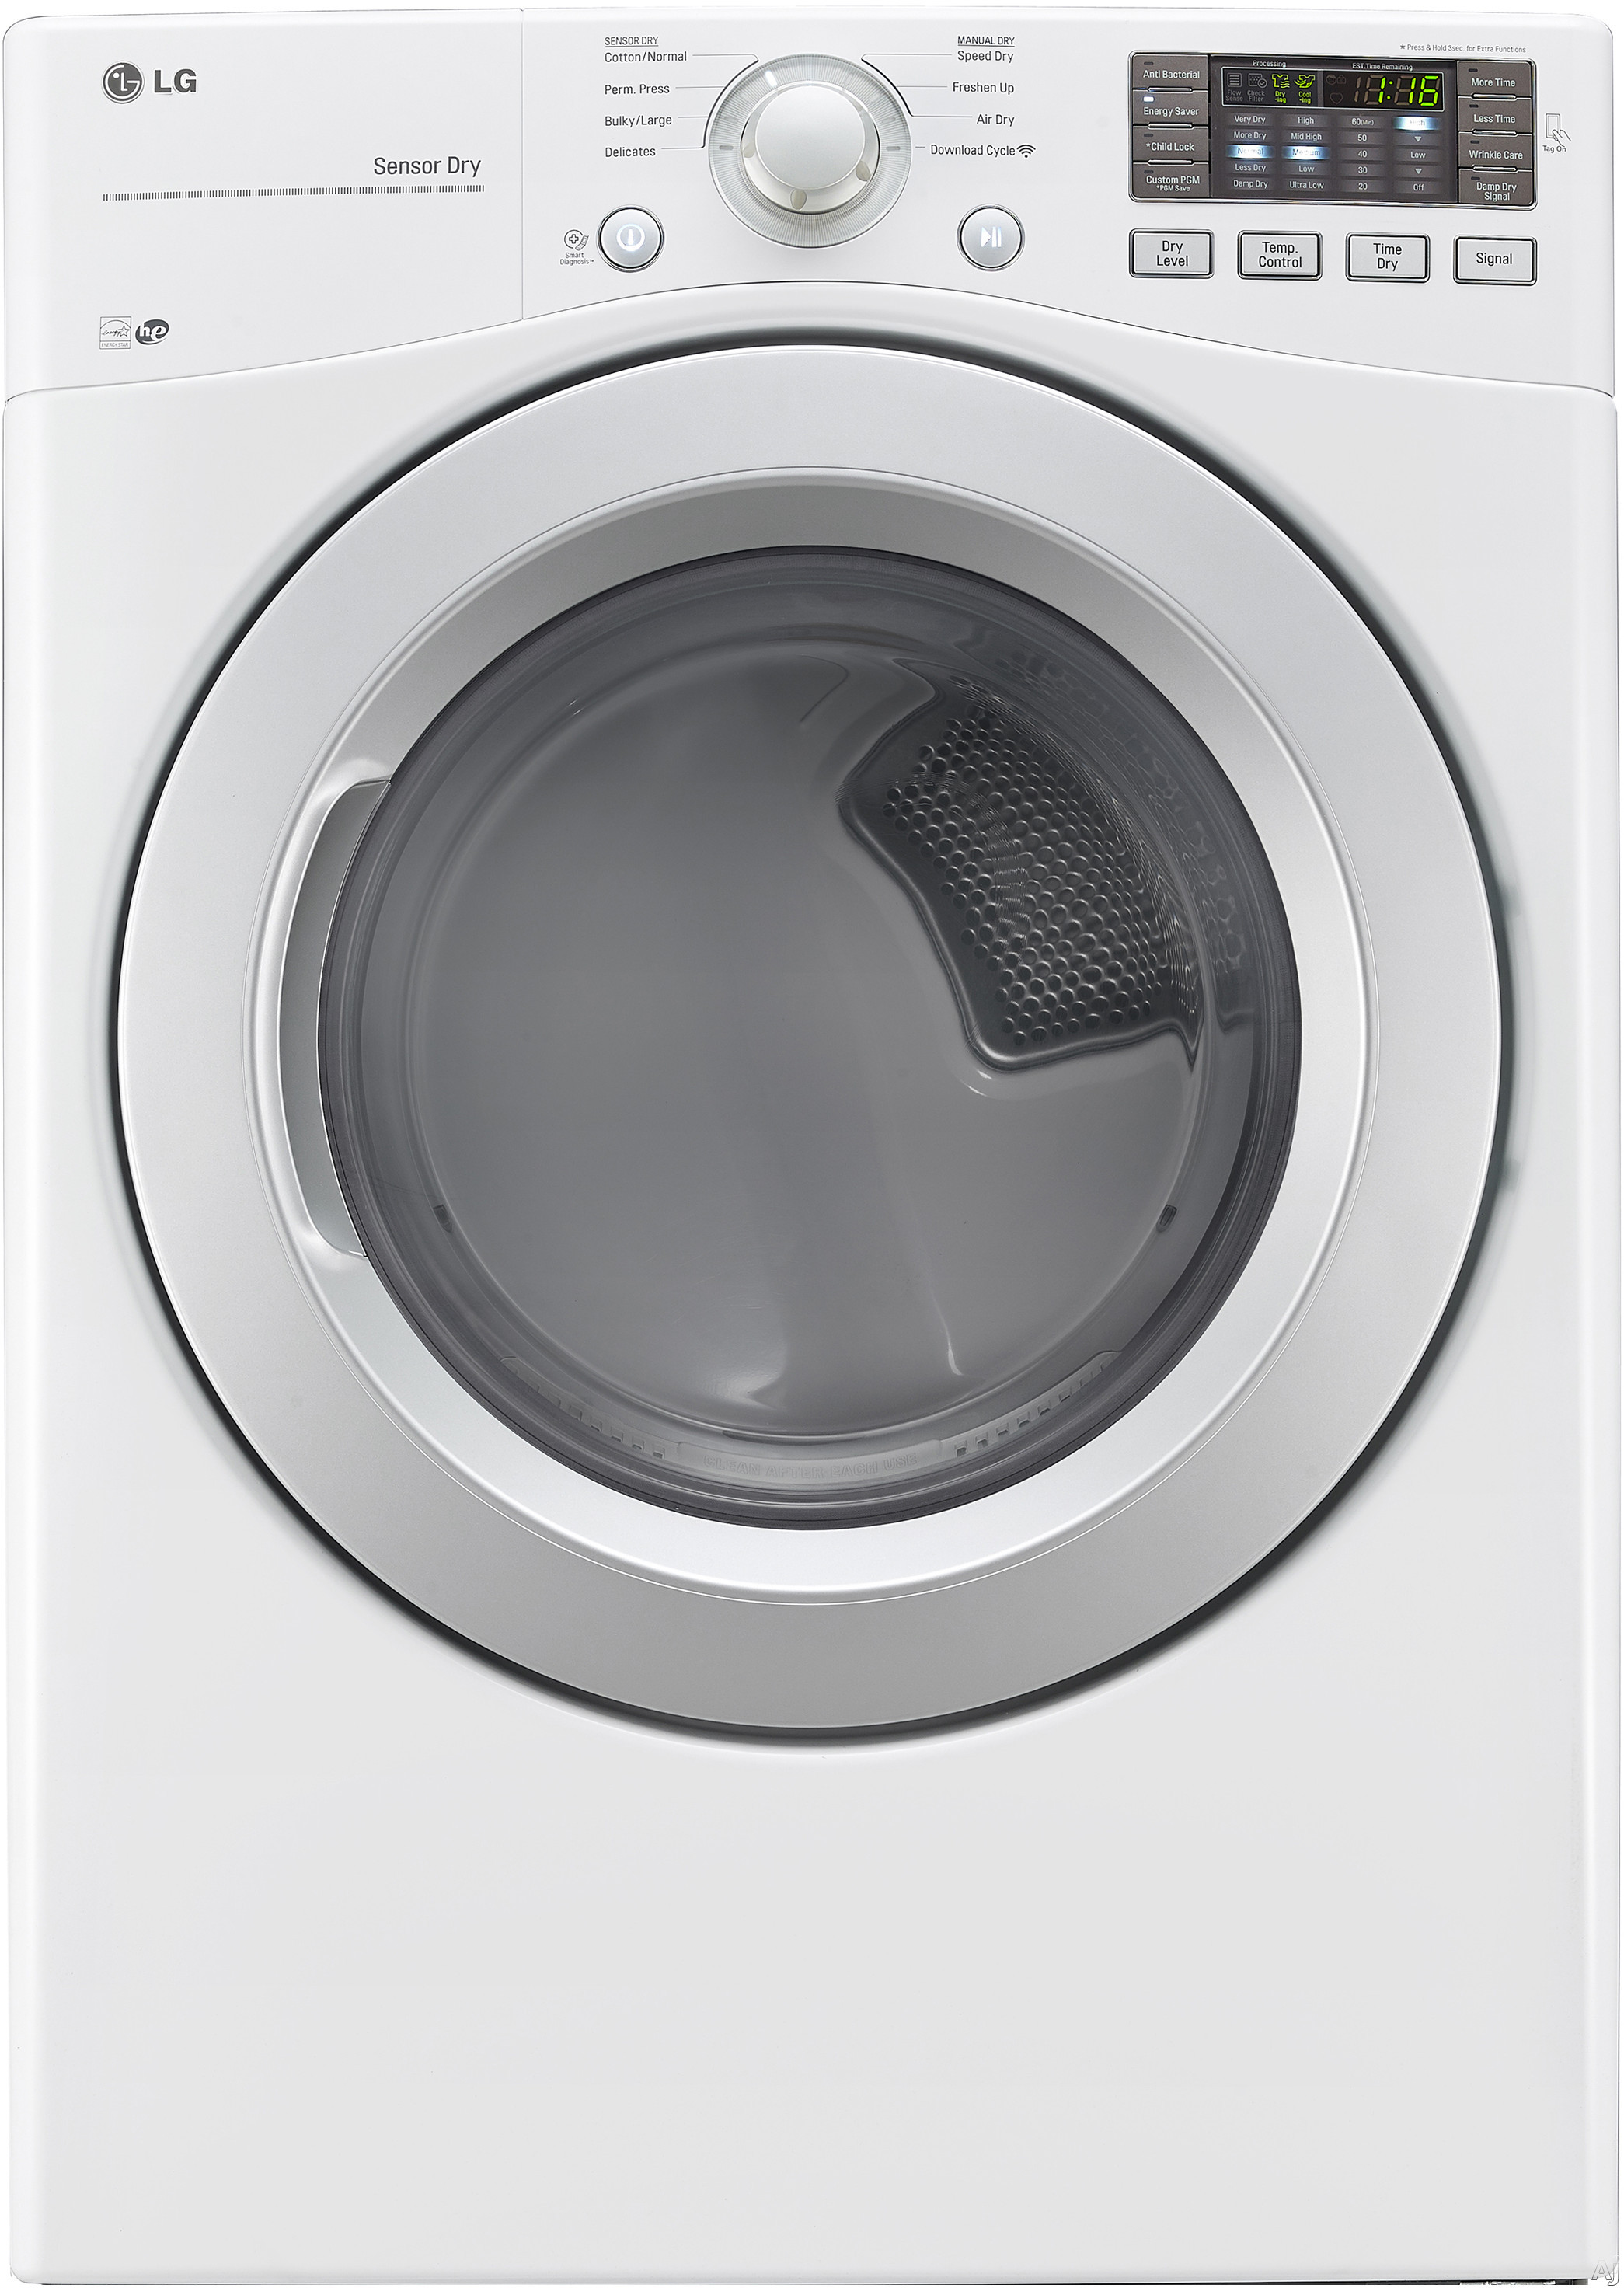 LG DLG3171W 27 Inch Gas Dryer with Wrinkle Care Sensor Dry NFC Tag On Anti Bacterial Cycle Speed Dry 8 Drying Programs Smart Diagnosis LoDecibel Quiet Operation ENERGY STAR and 7.4 cu. ft. Capacity